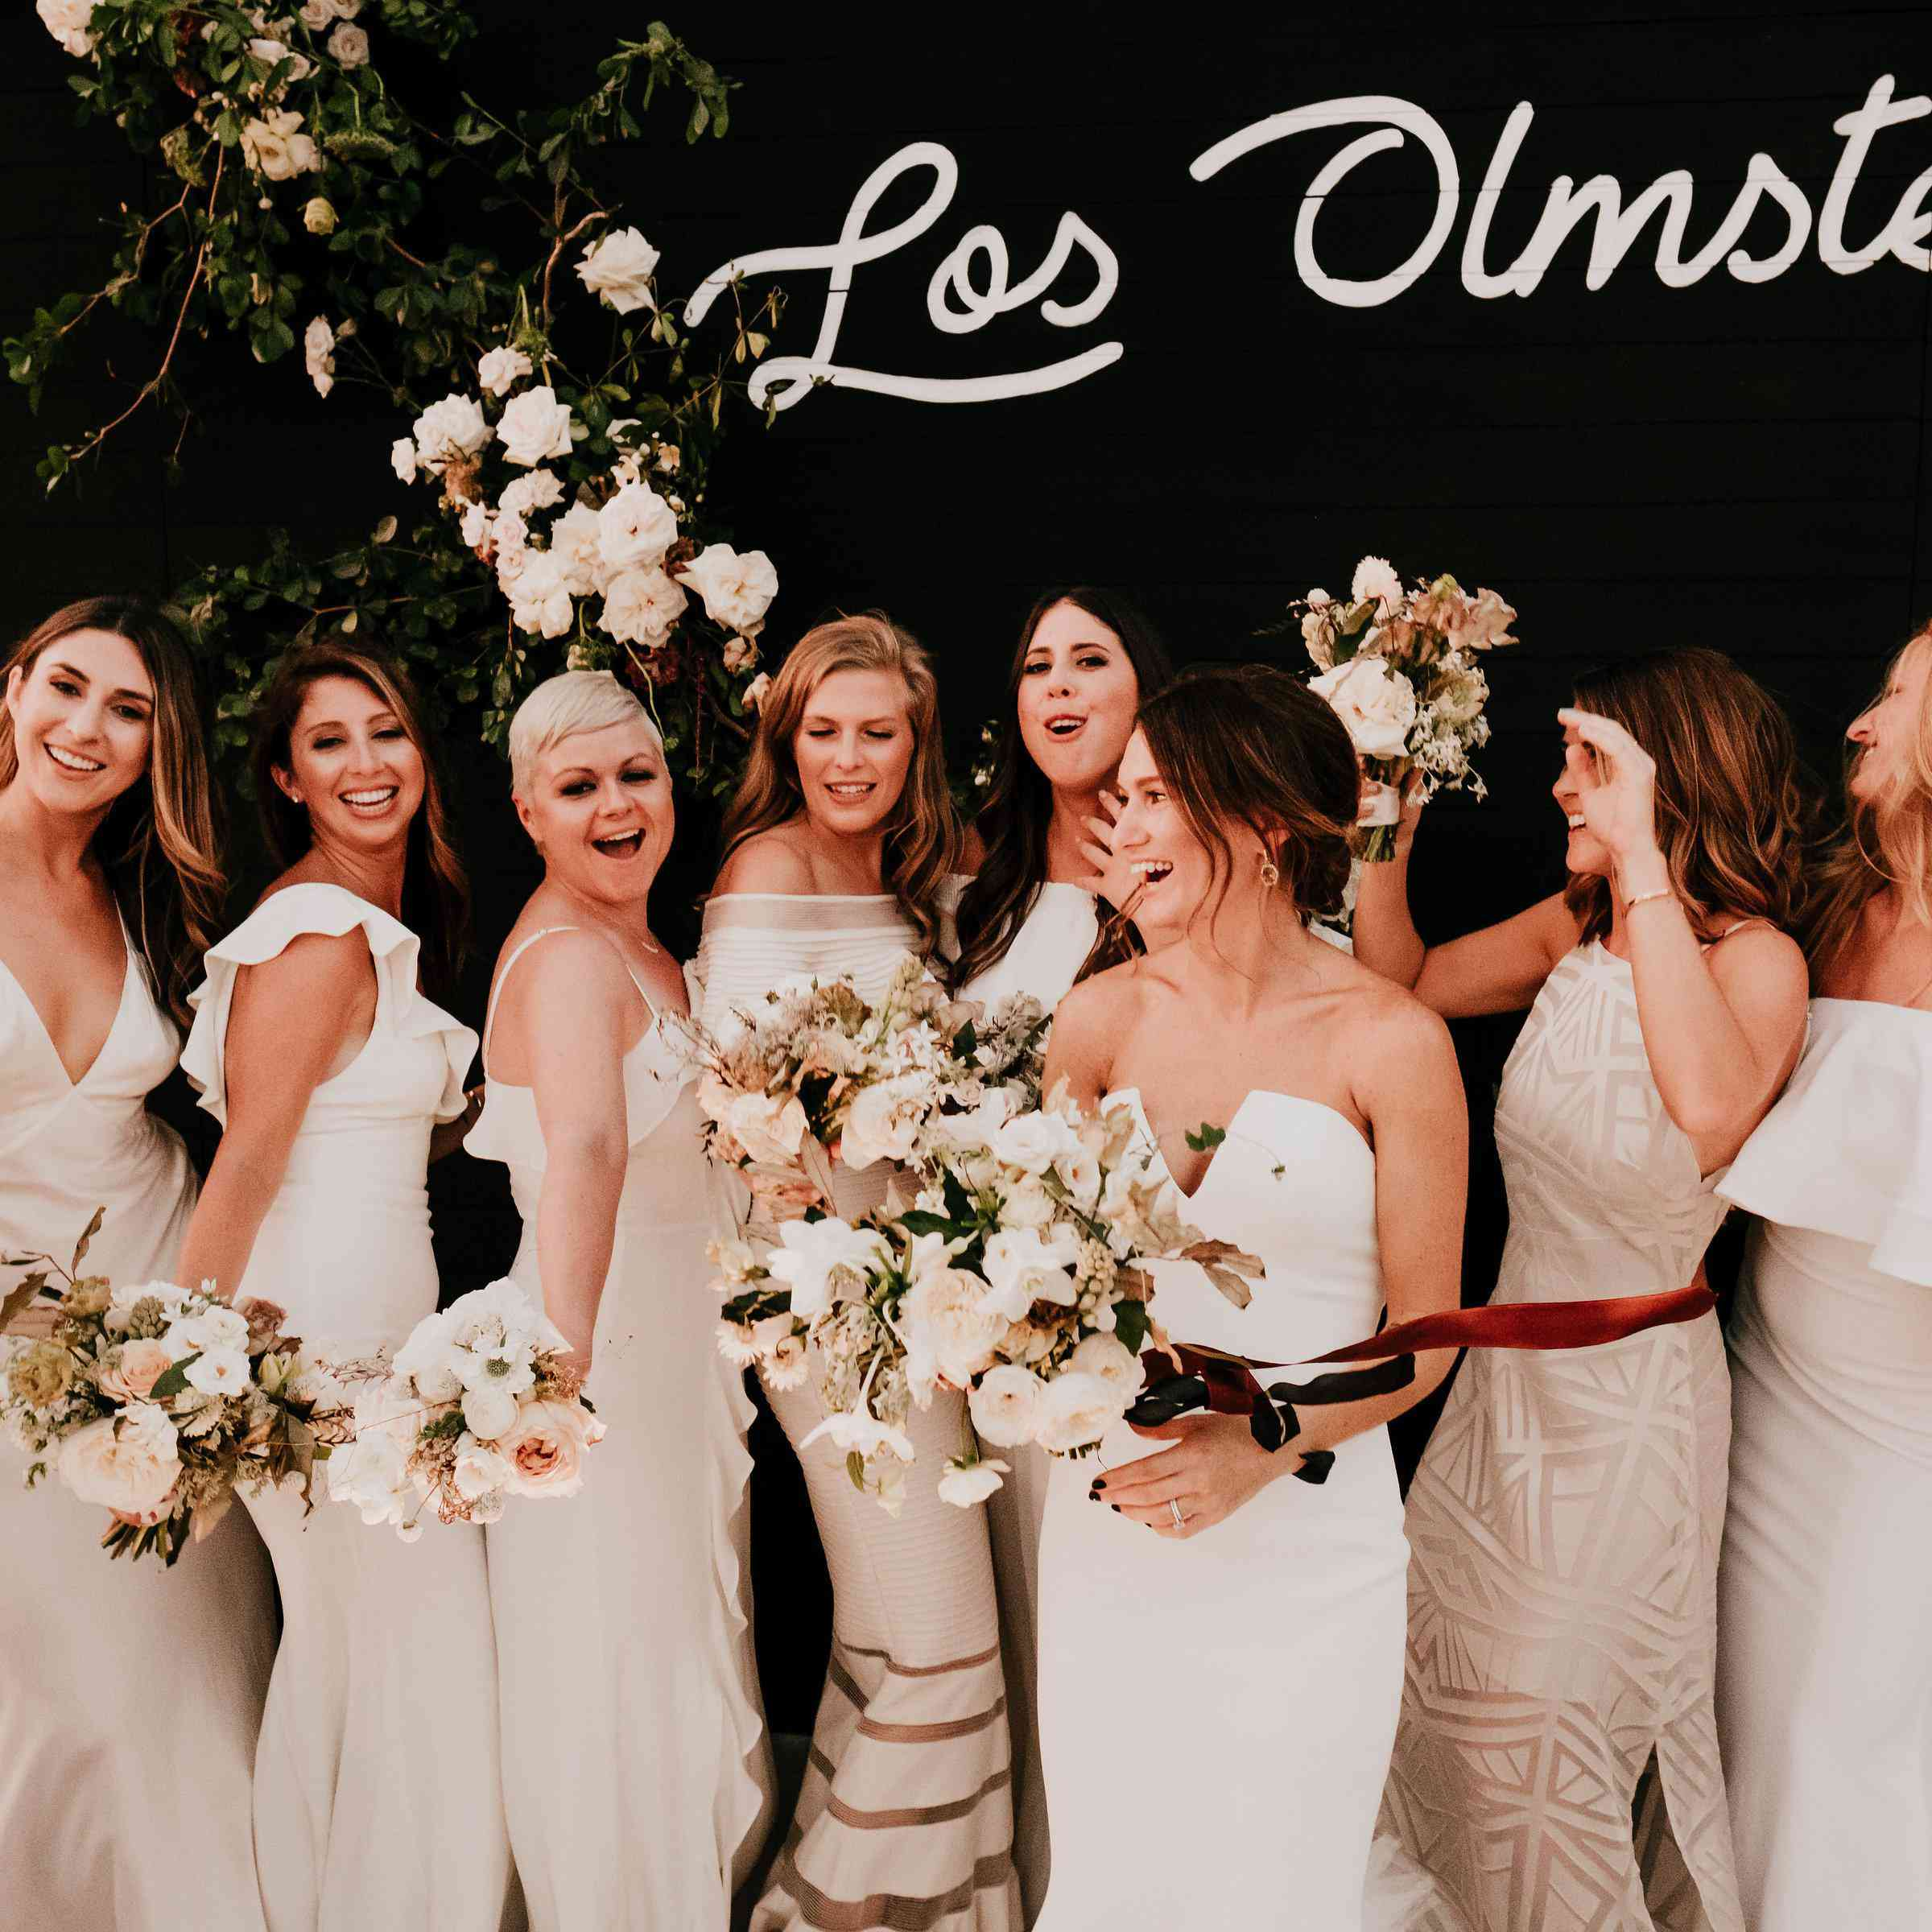 Who Pays For The Bridesmaid Dresses